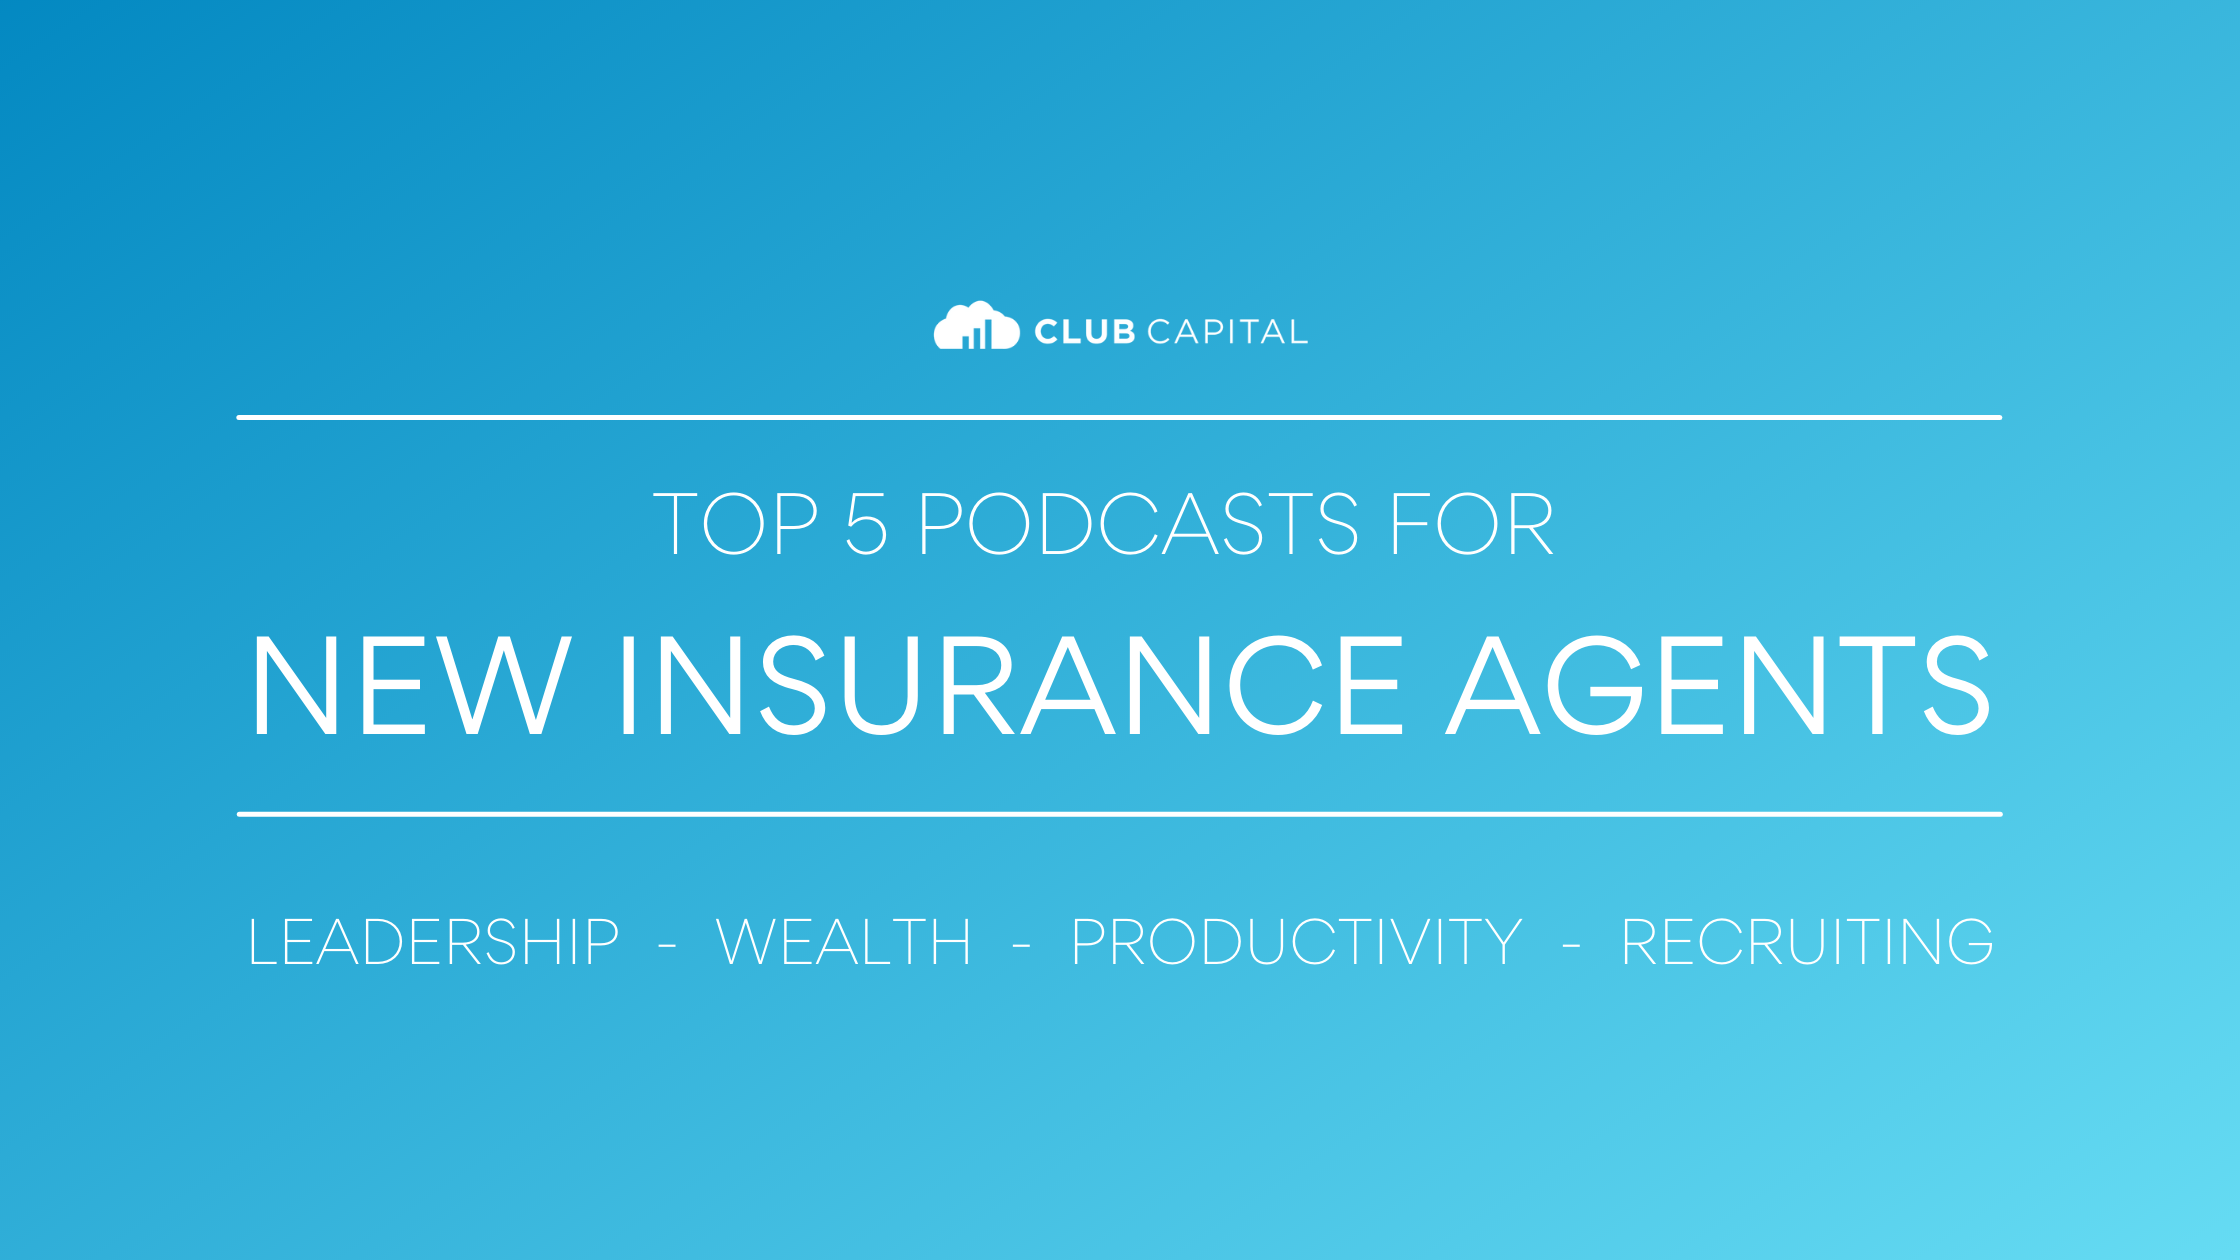 Top 5 Club Capital Podcasts for New Insurance Agents